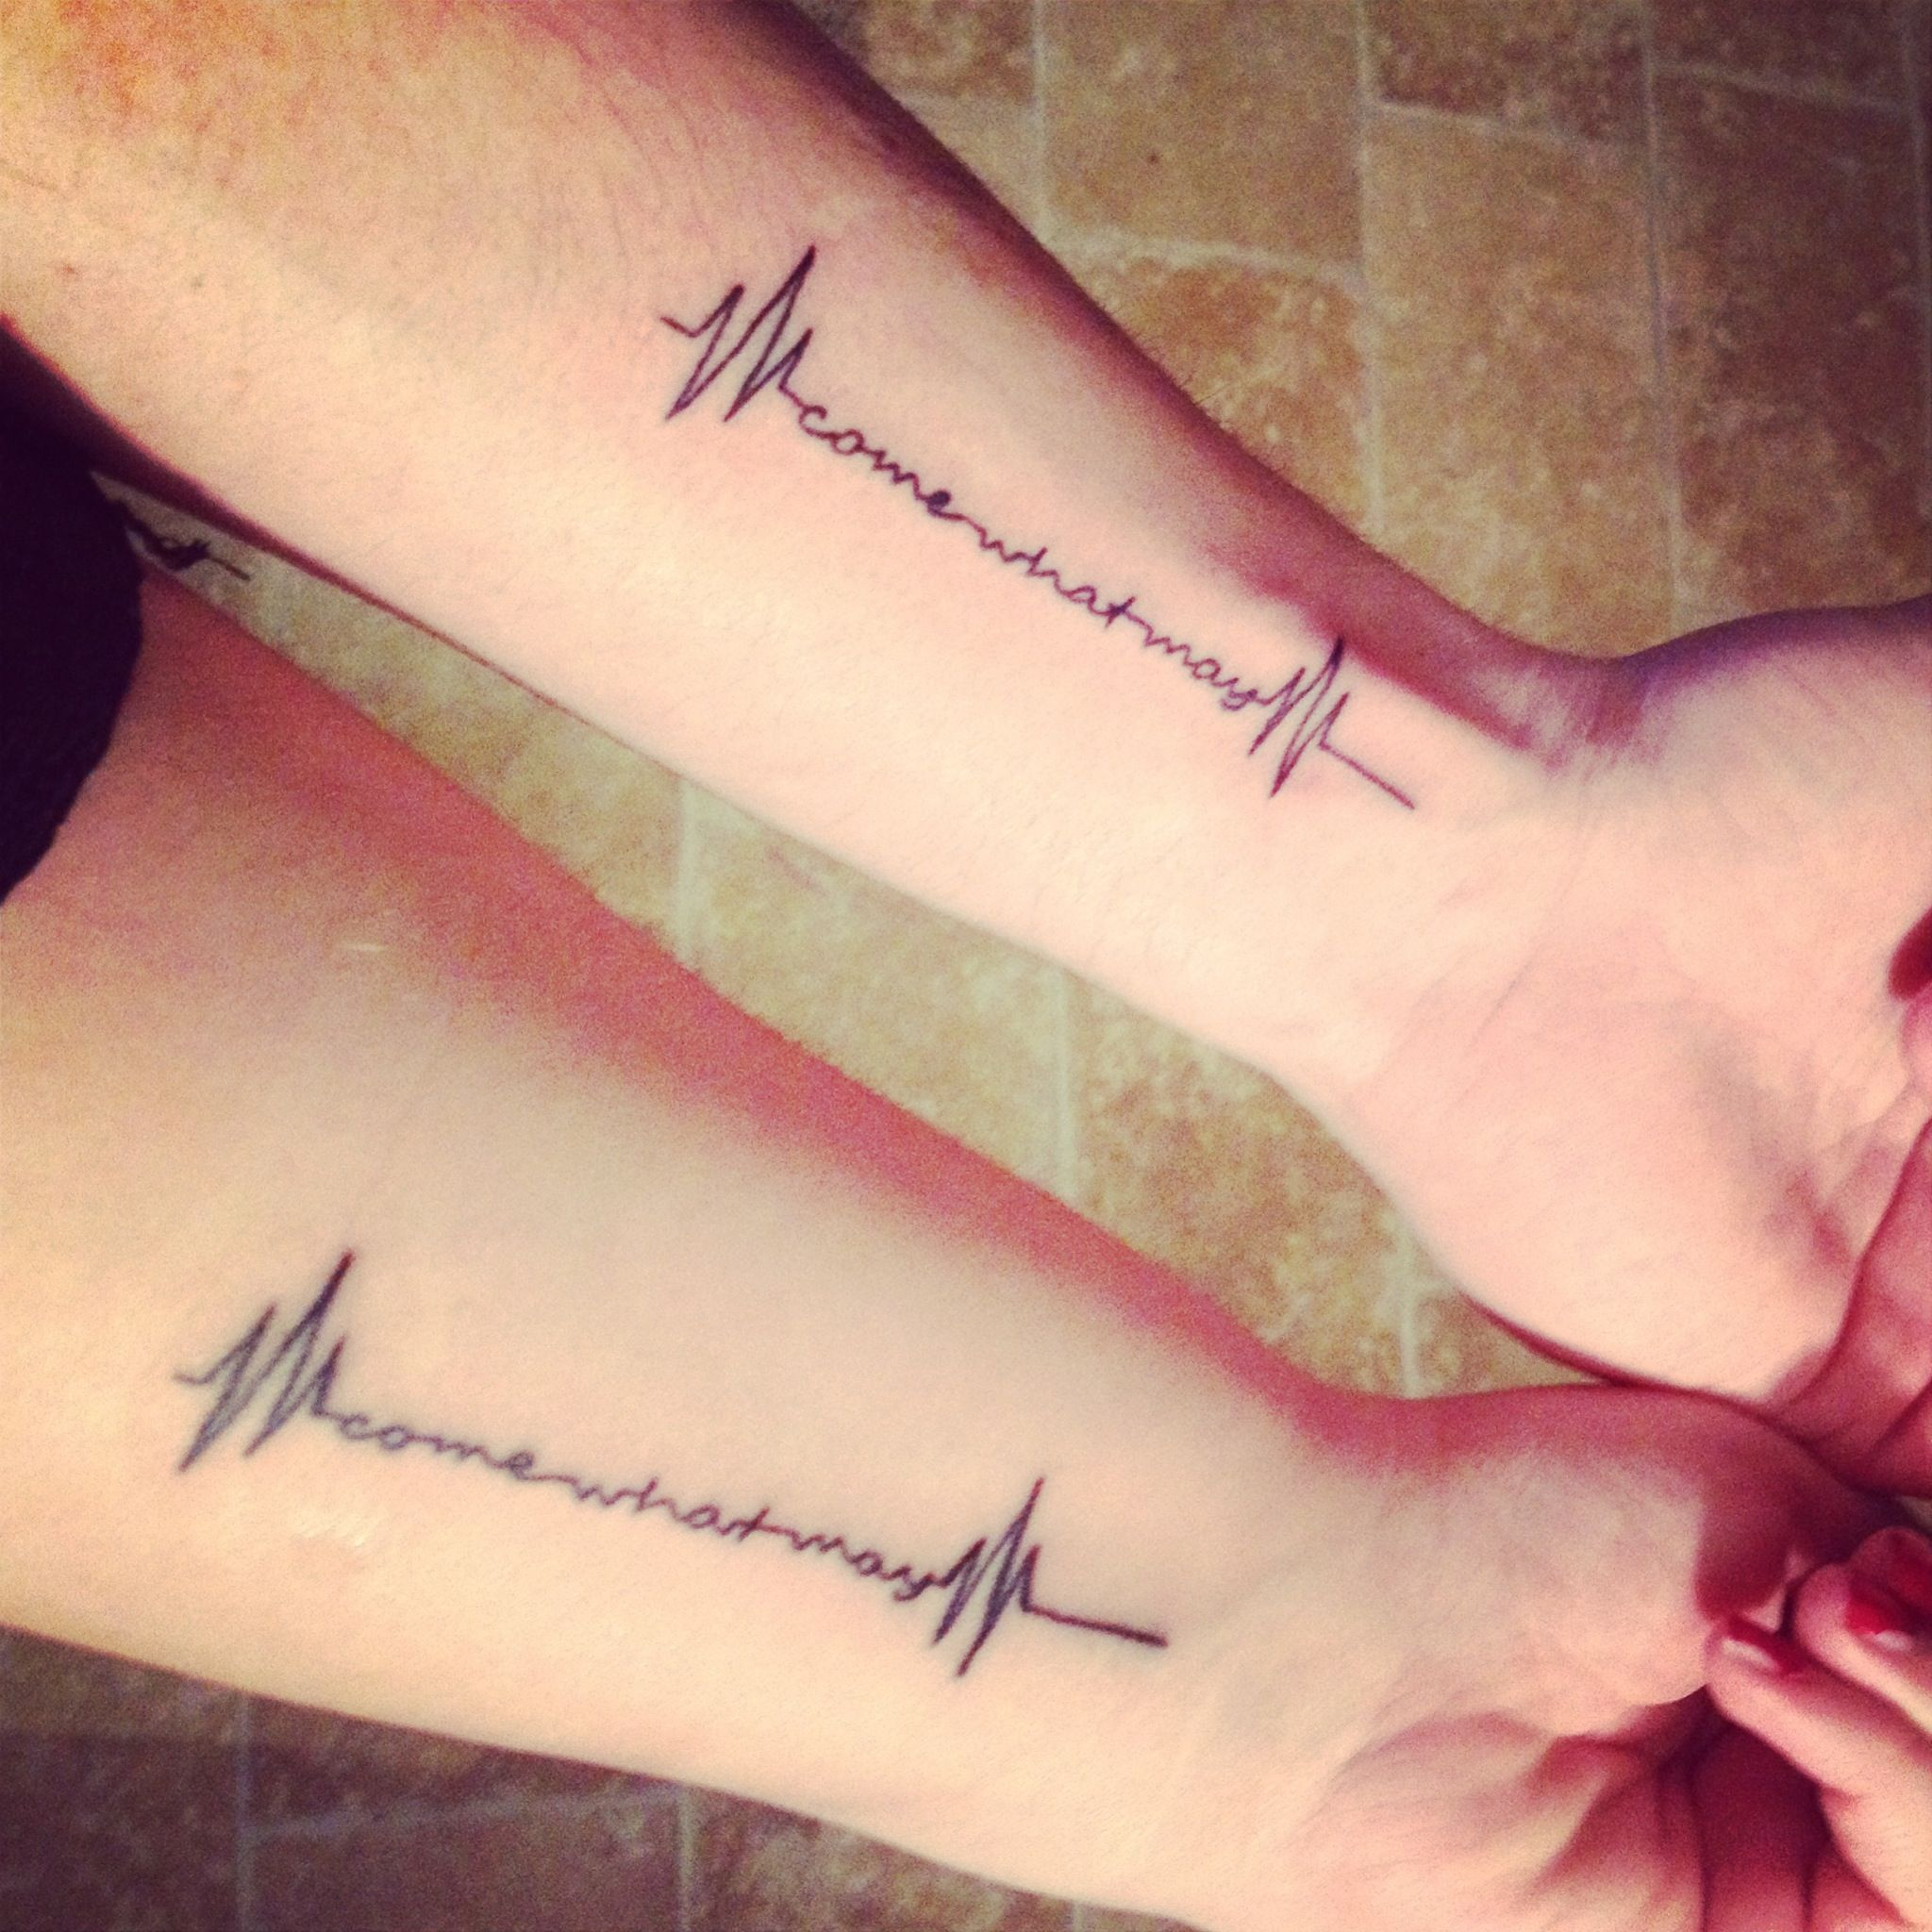 Tattoo designs tattoo word designs tattoo designs words tattoo - Our Wedding Song In Tattoo Form